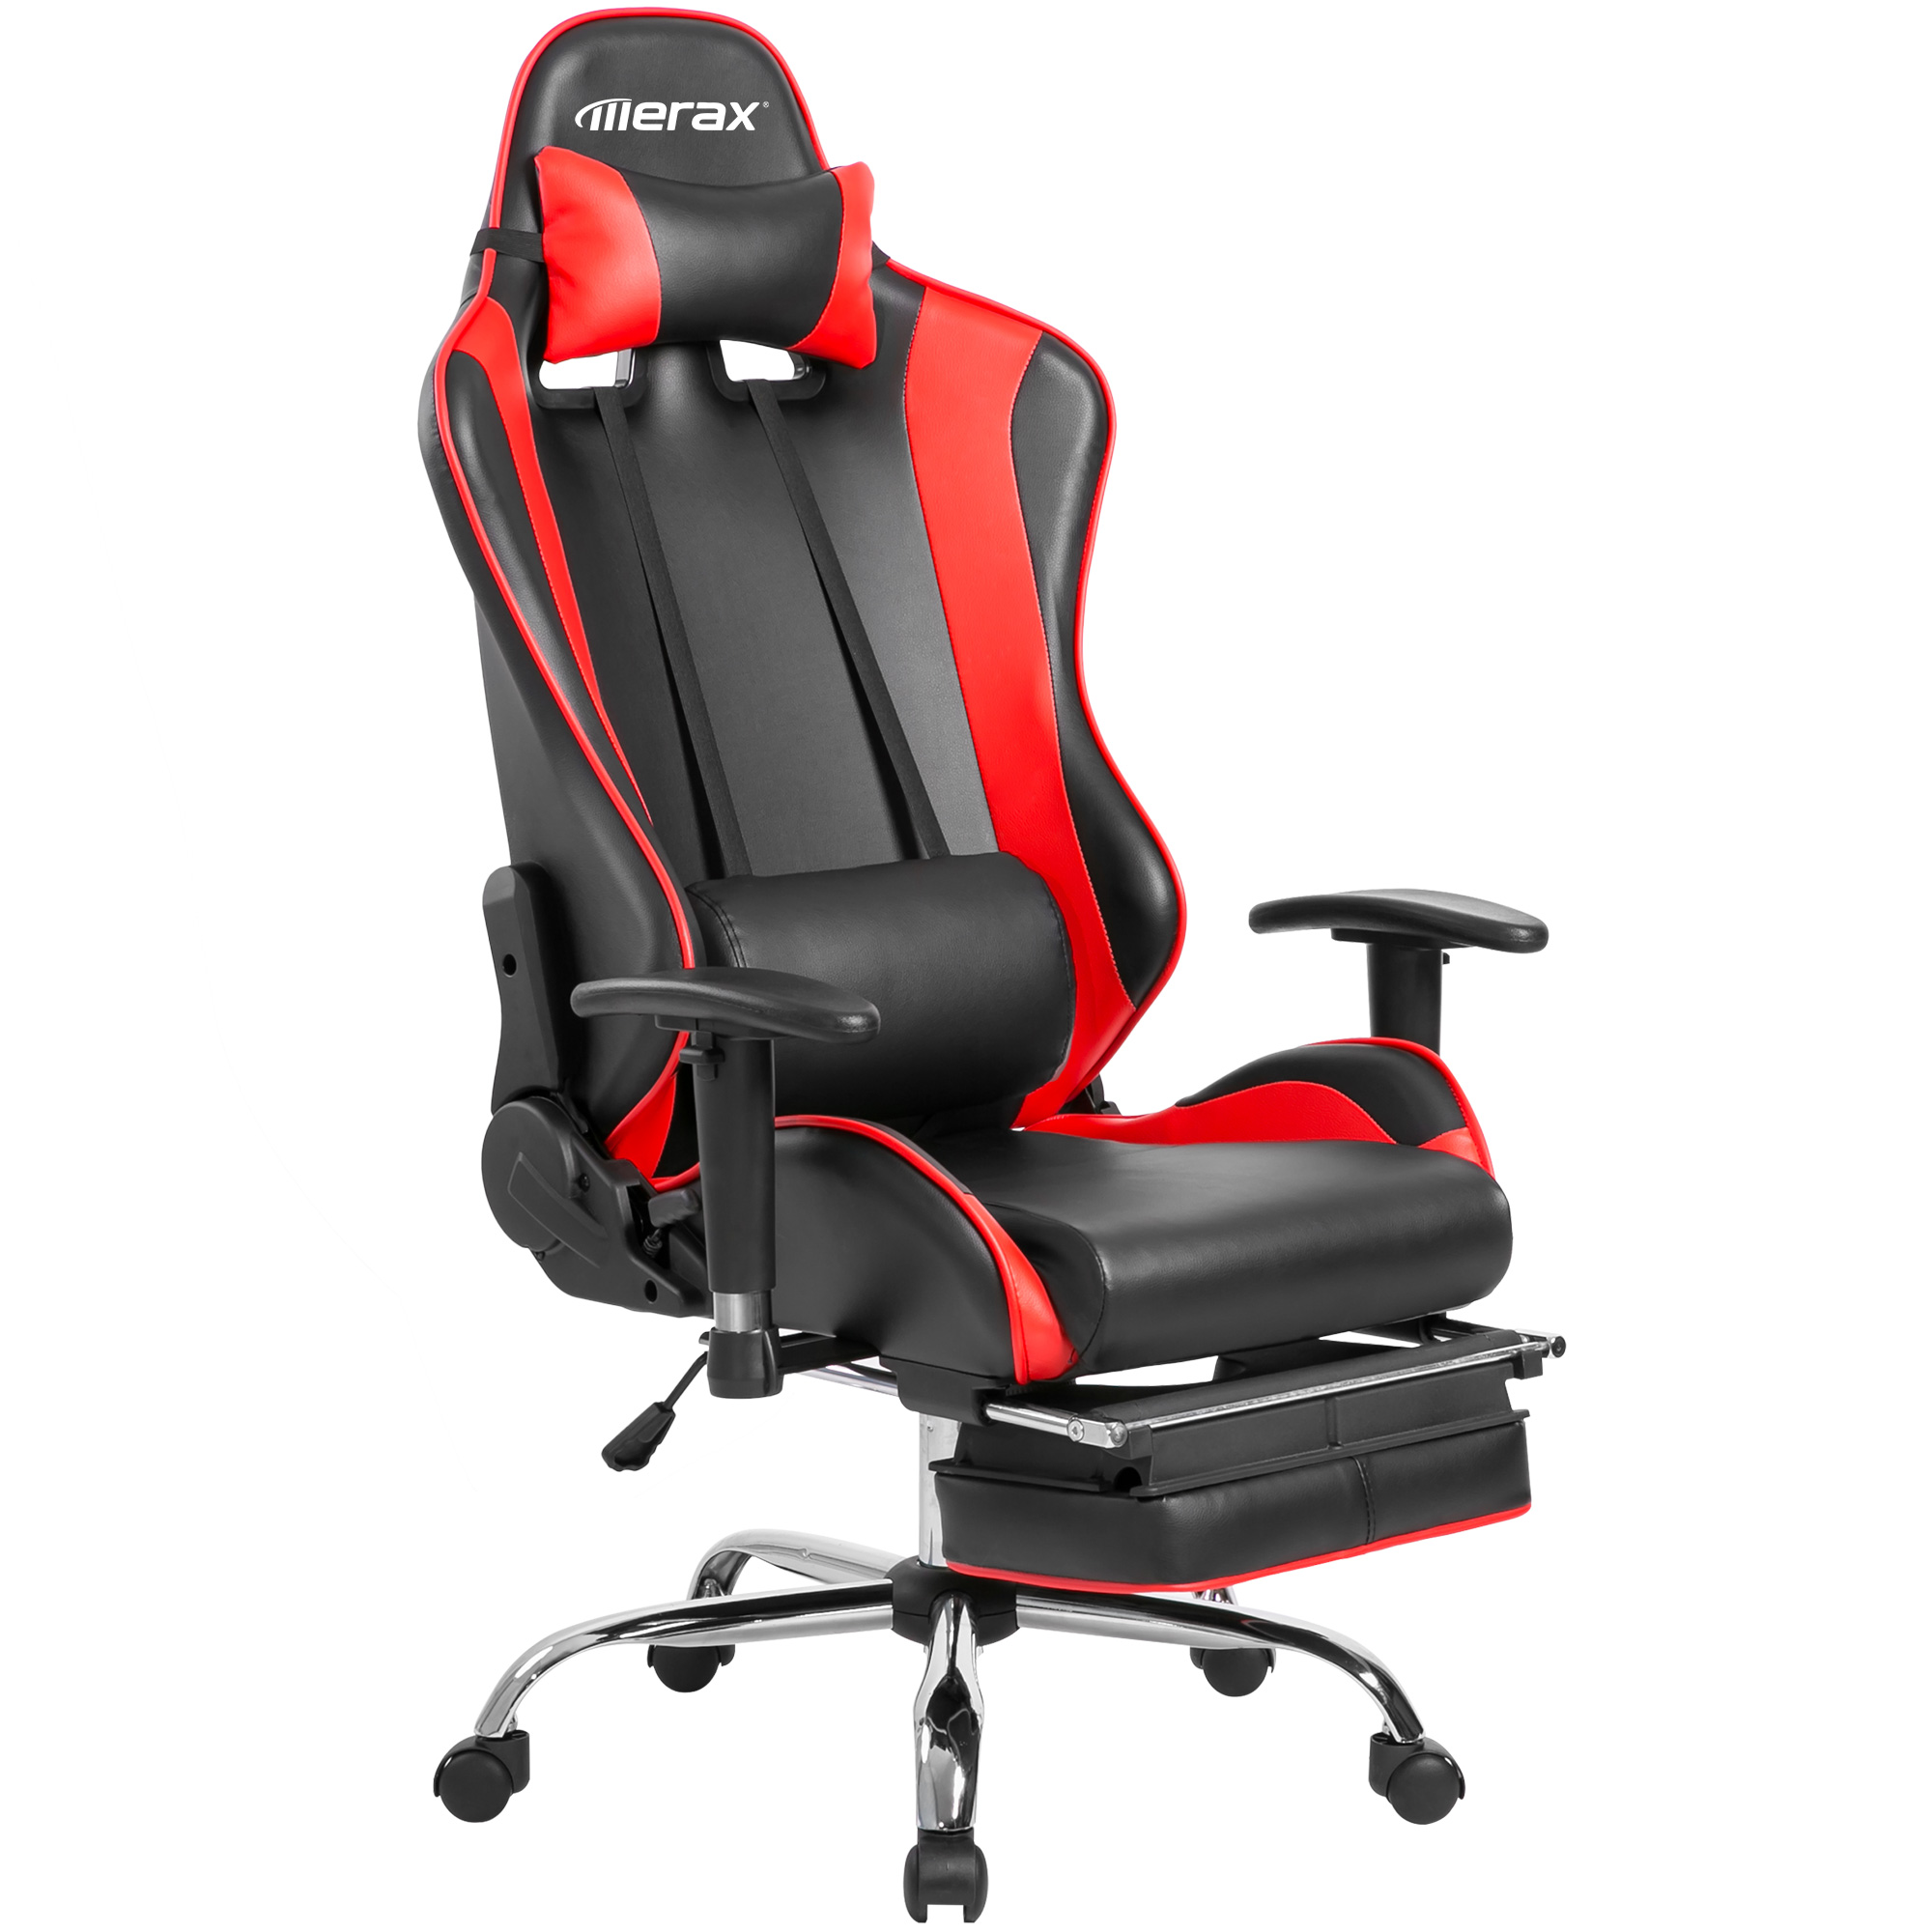 Merax High-Back Ergonomic Racing Style Computer Gaming Office Chair Recliner